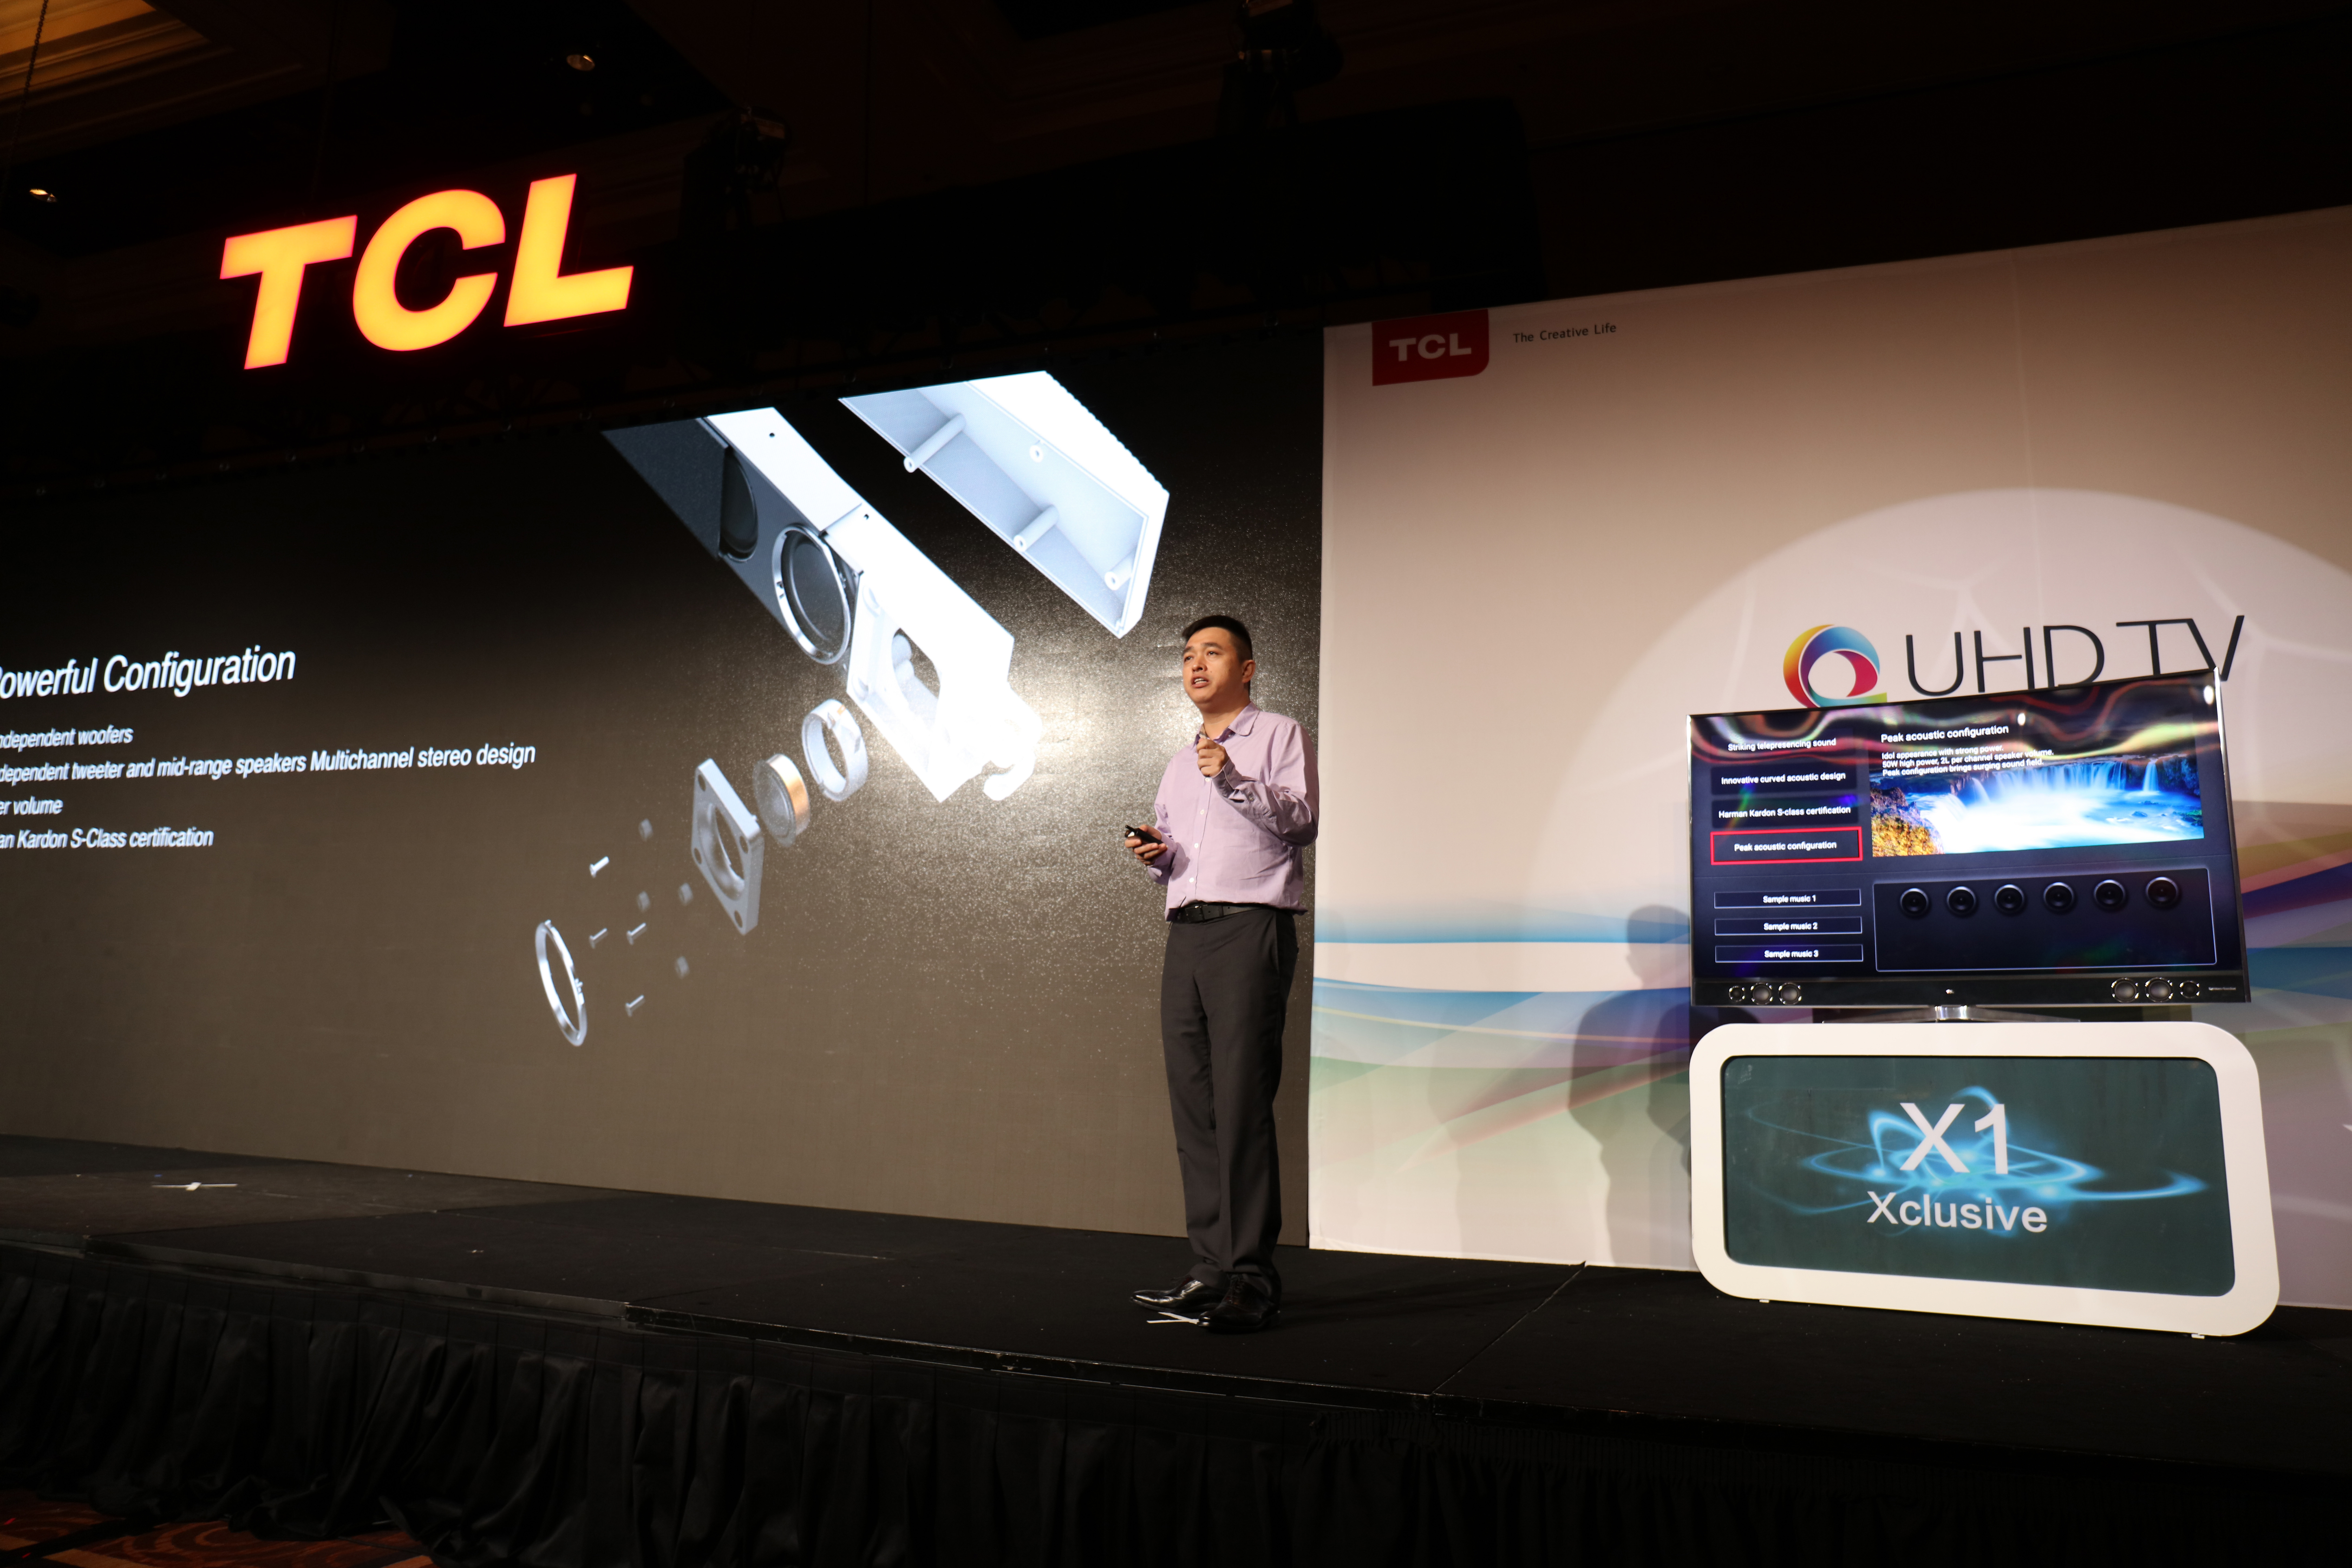 Tcl Launches Worlds First Quhd Tv Series At Ces 2016 Business Wire